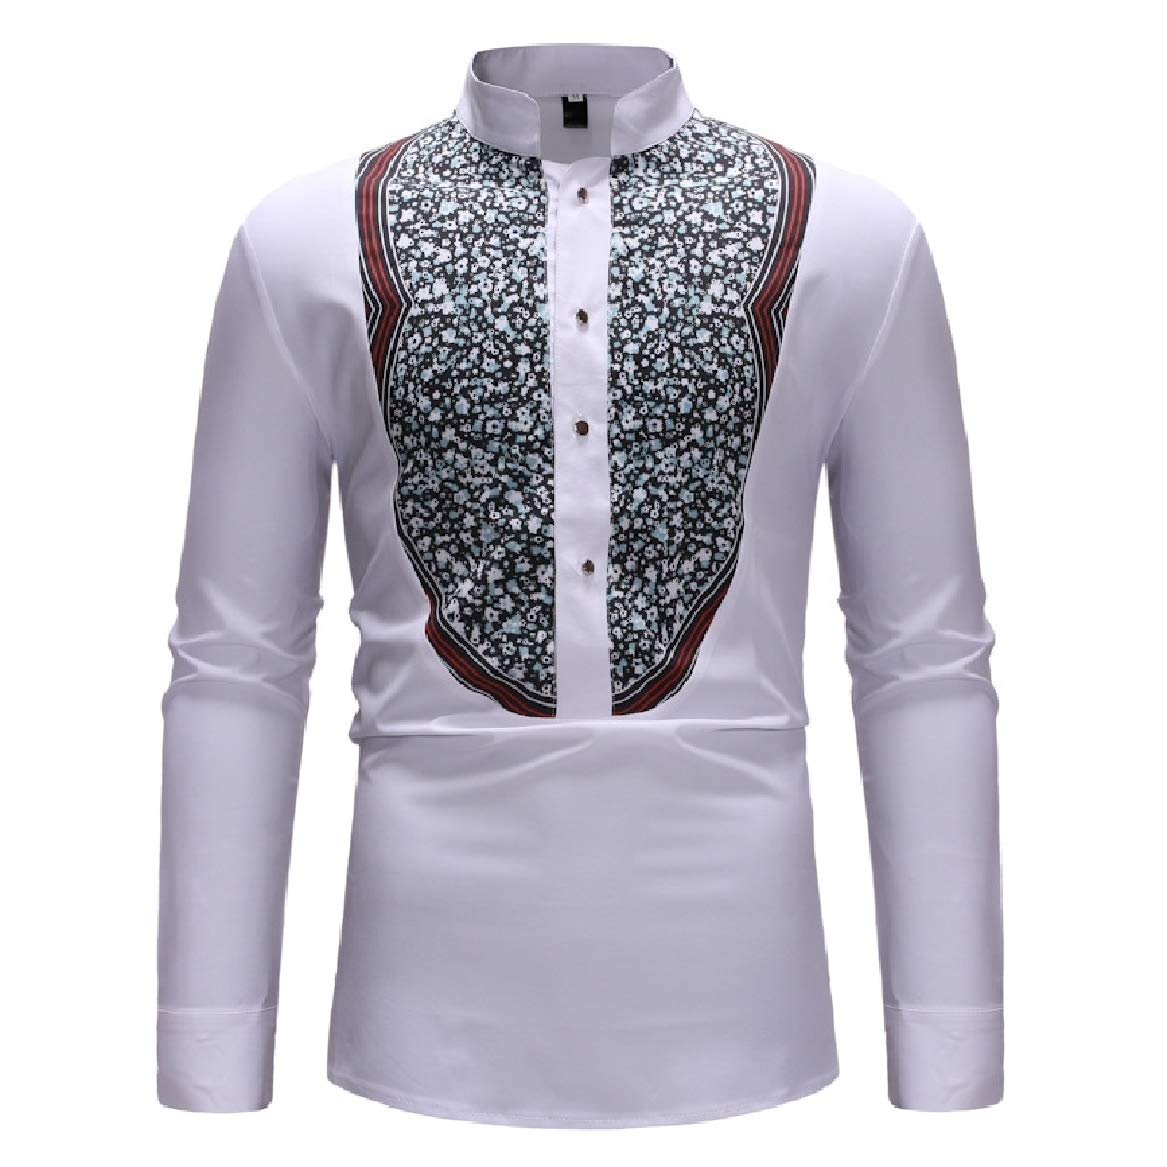 Sayah Mens Plus Size Floral Printed Lounge Business Work Shirt